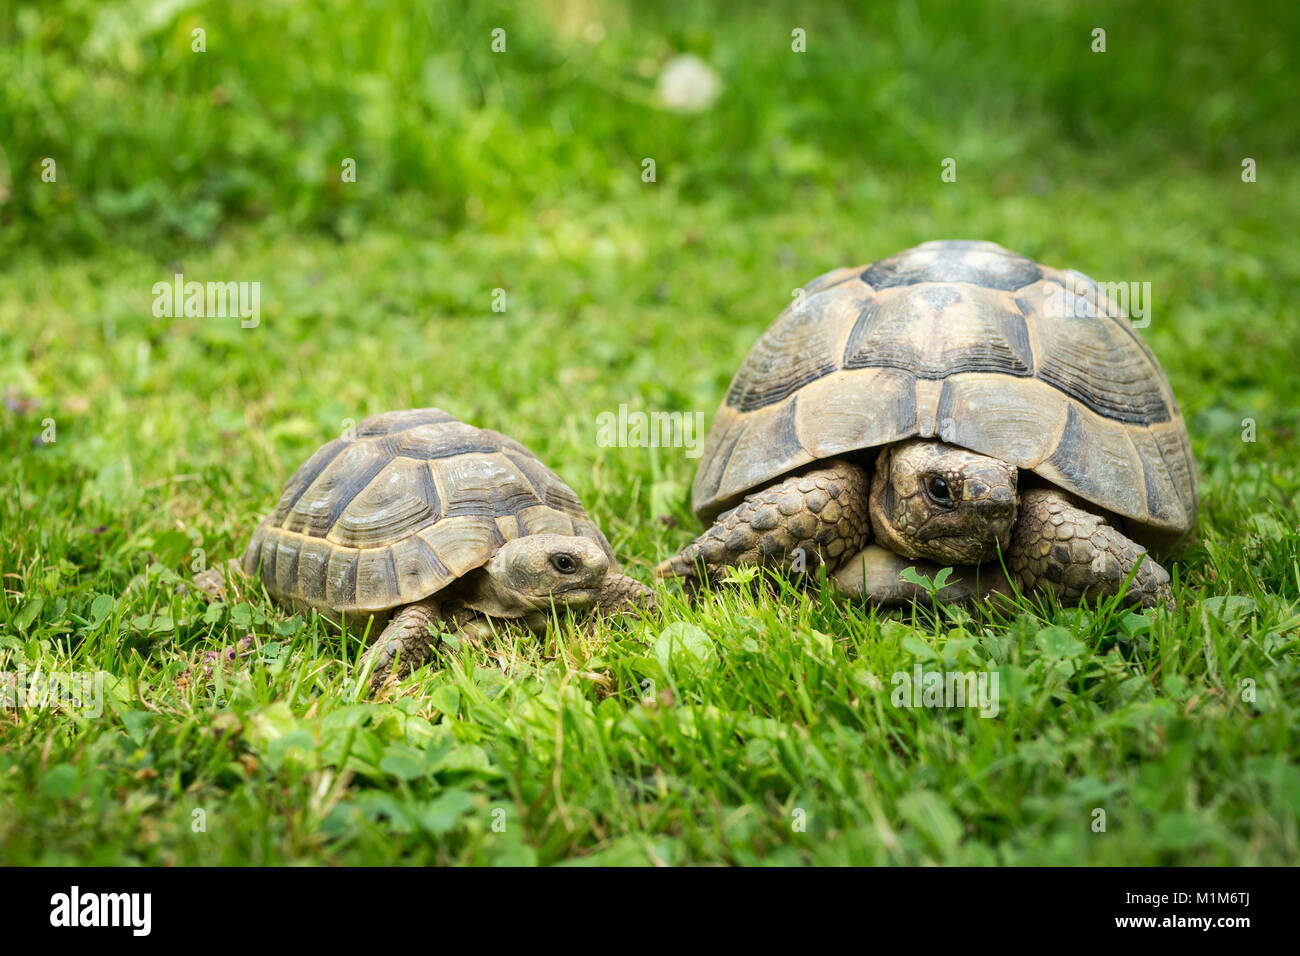 Hermanns Tortoise (Testudo hermanni). Two individuals of differnt age in grass. Germany - Stock Image